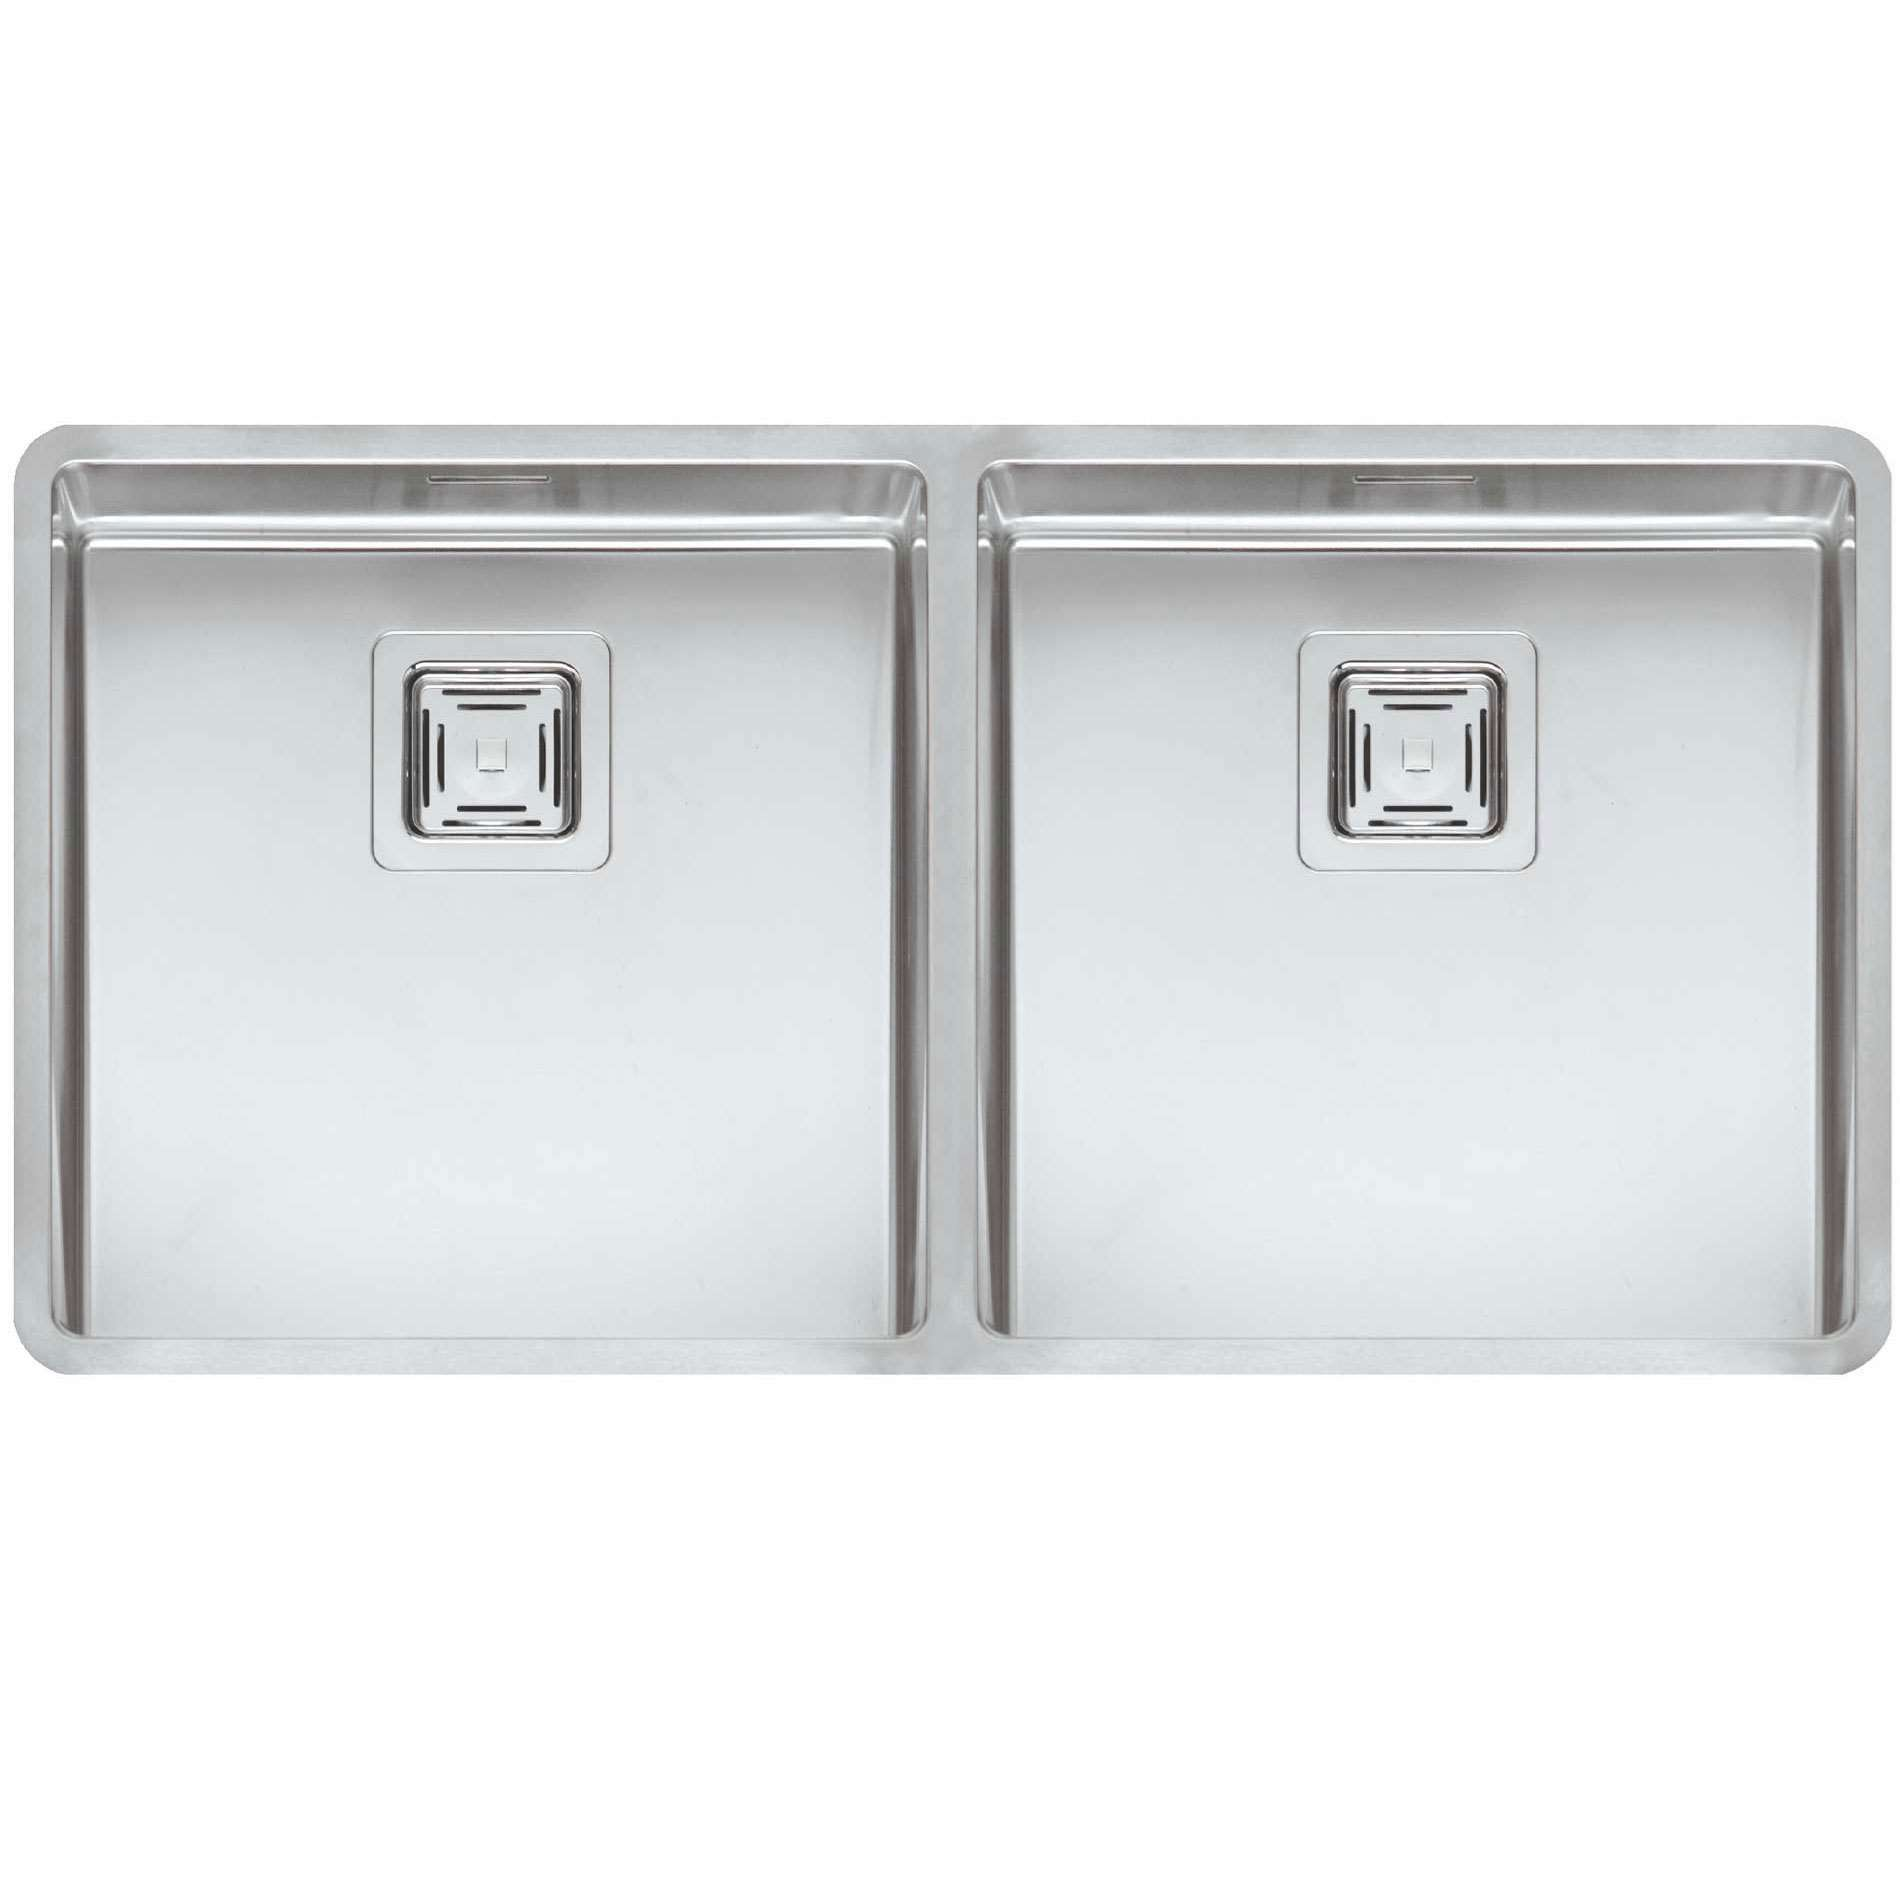 Picture of Texas 40x40+40x40 Stainless Steel Sink